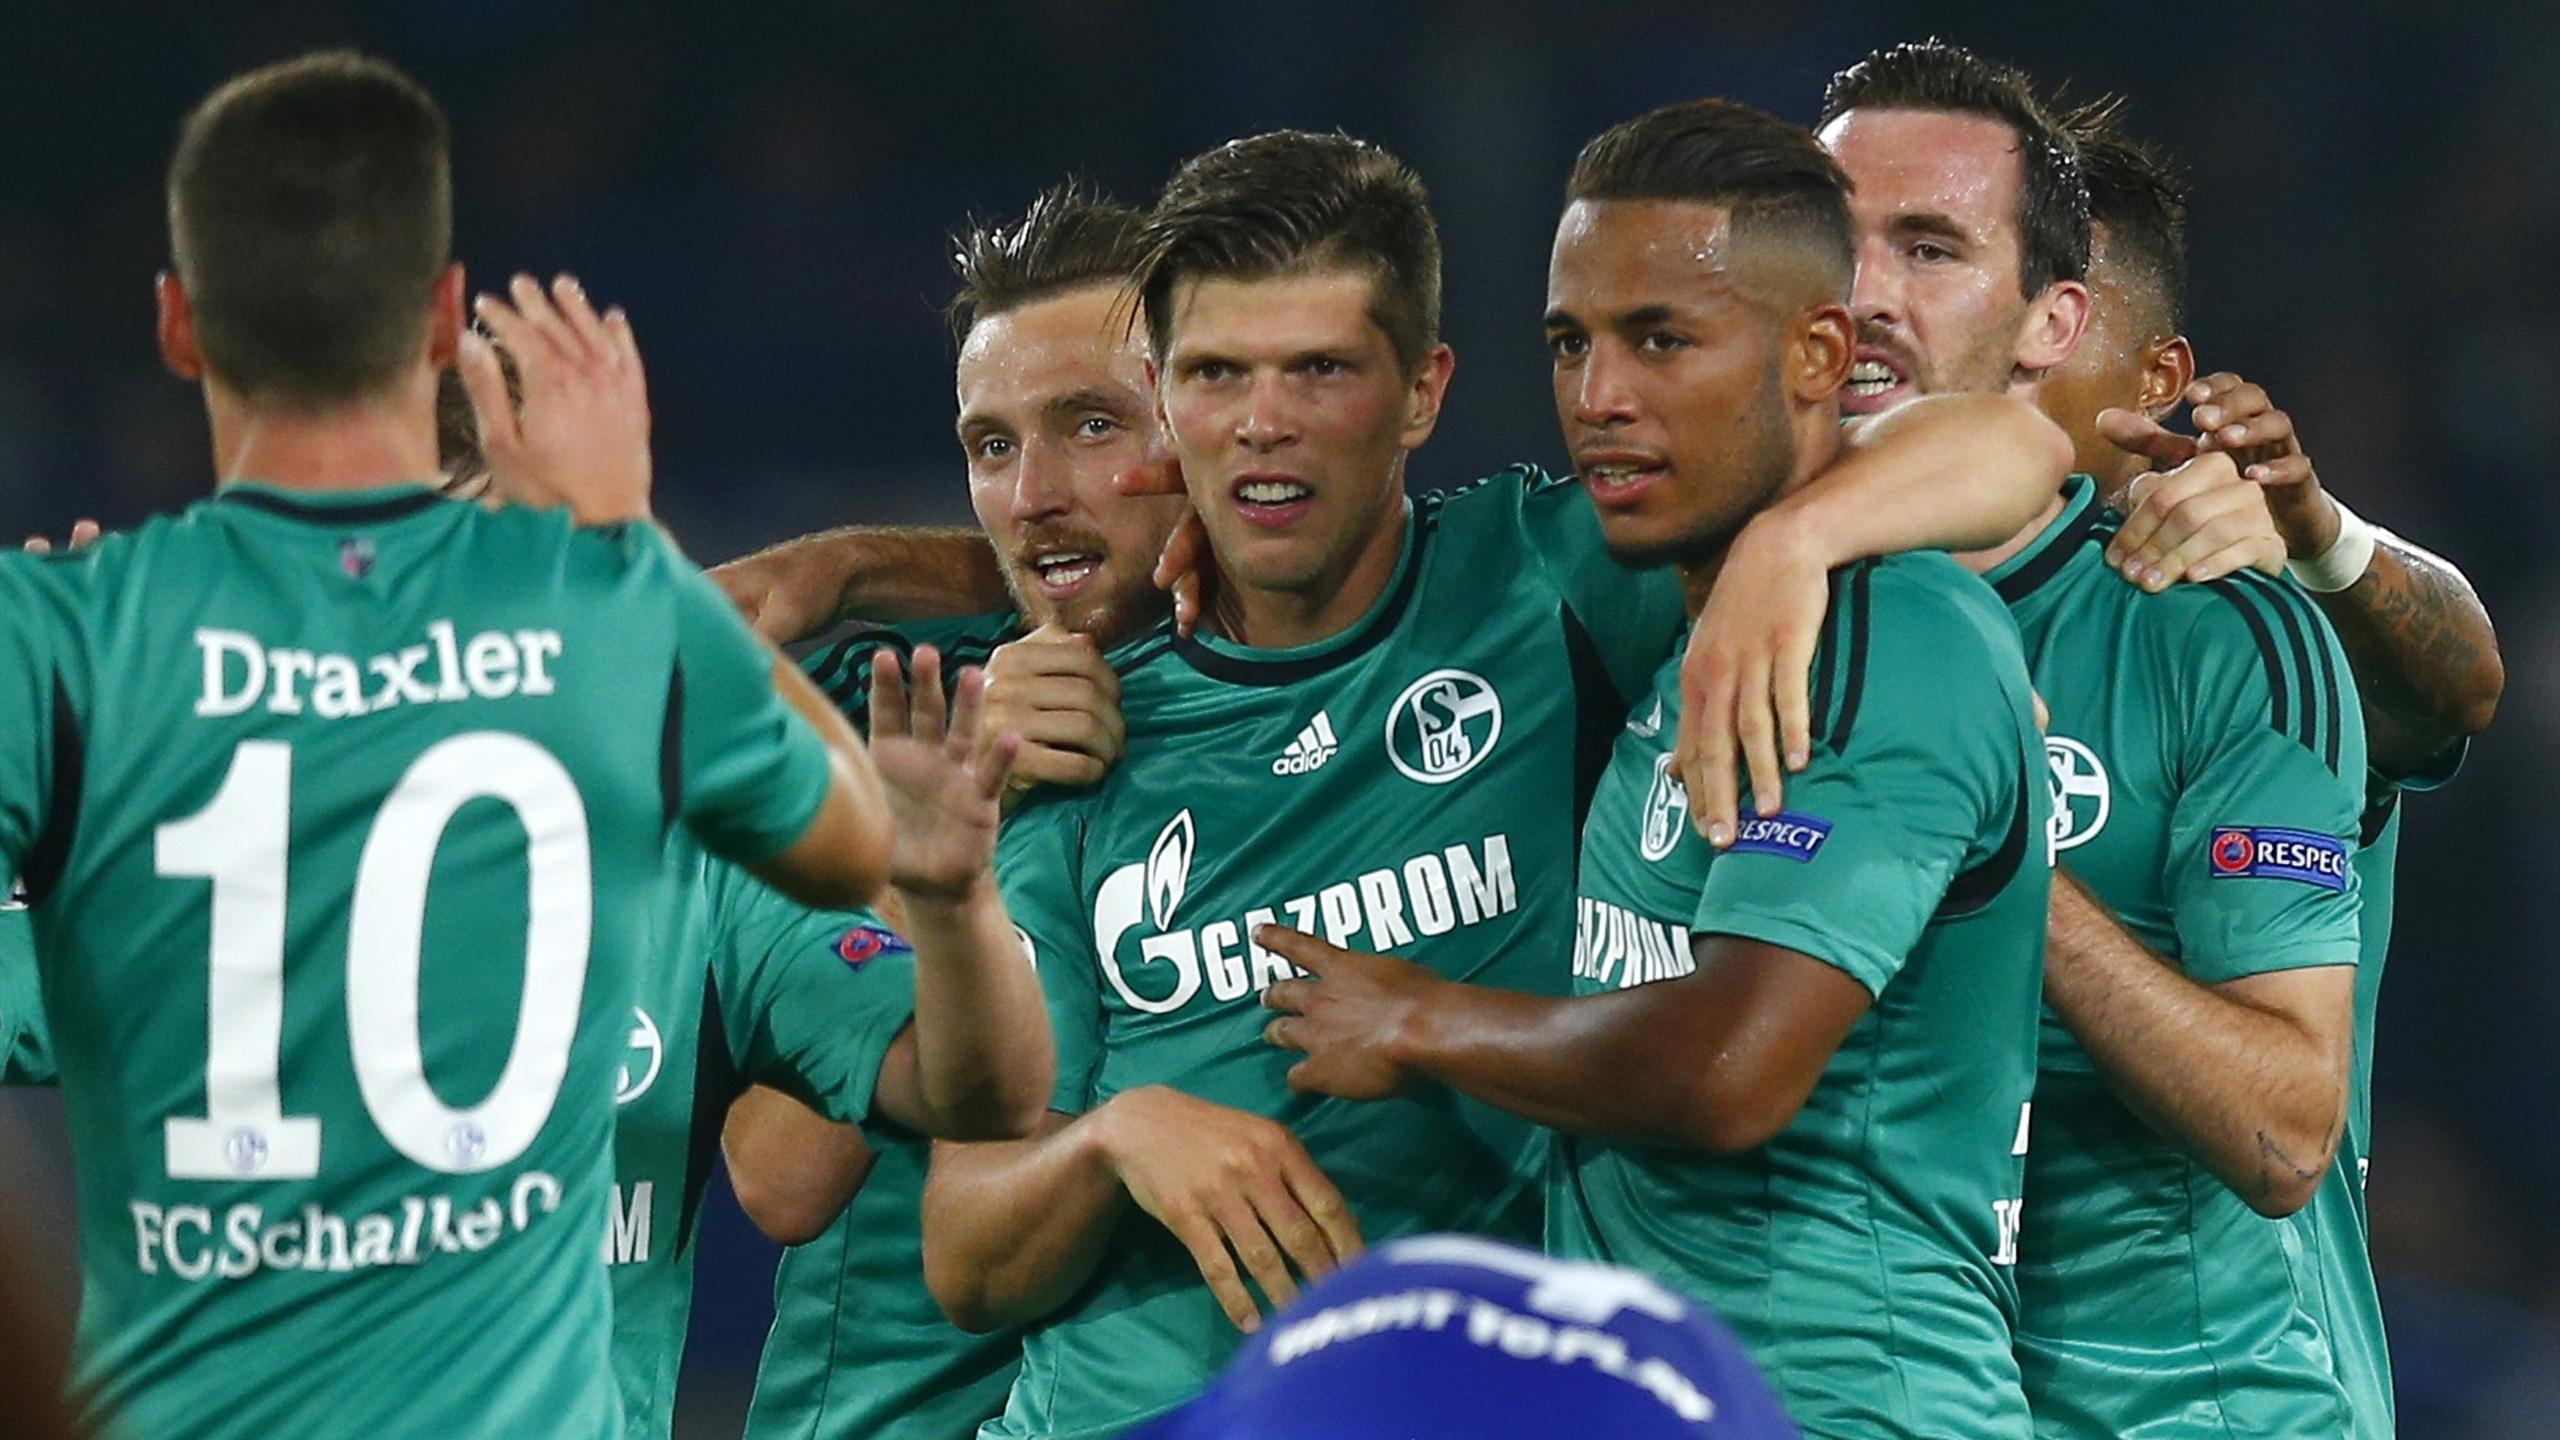 Match Sporting Lisbon vs Schalke 04 en direct live streaming